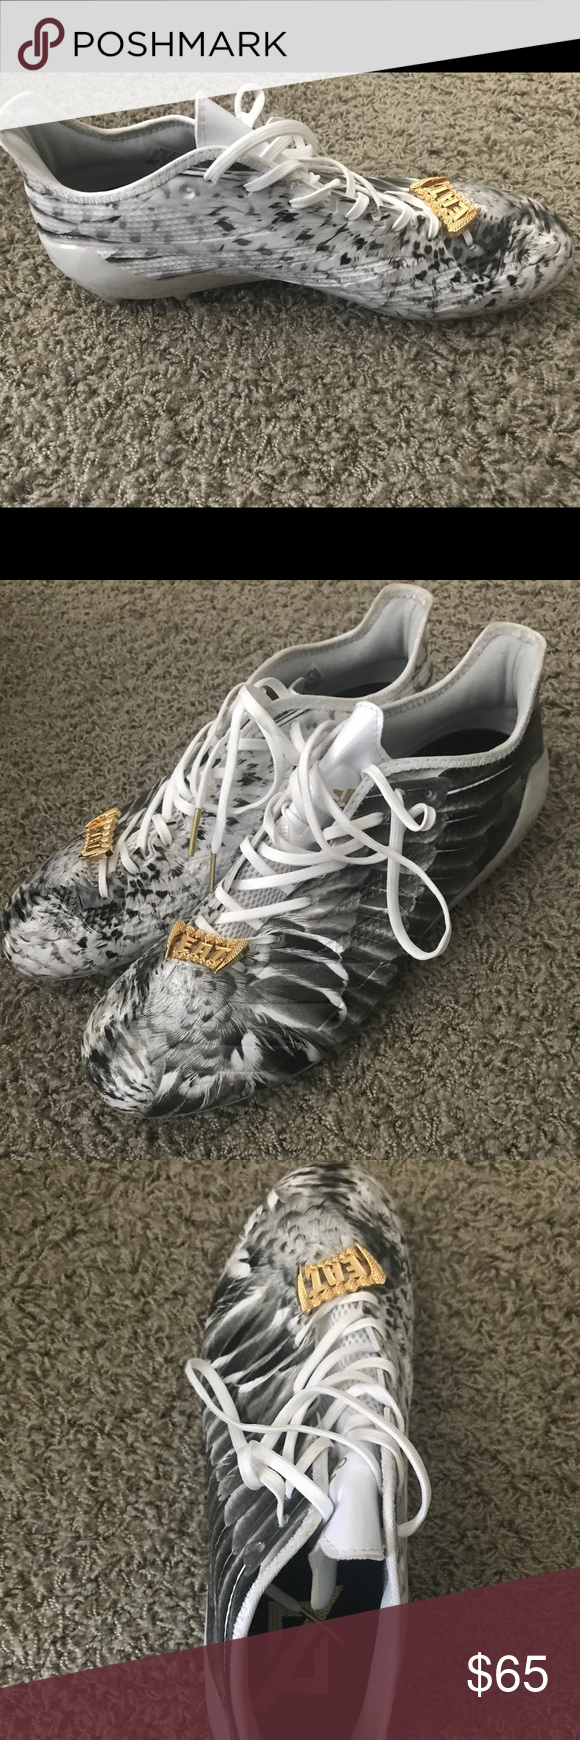 competitive price dfb2f 9c23b adidas cleats Adizero 5-Star 6.0 Uncaged Cleat Men s Football, Eagle  White-Metallic Gold adidas Shoes Athletic Shoes